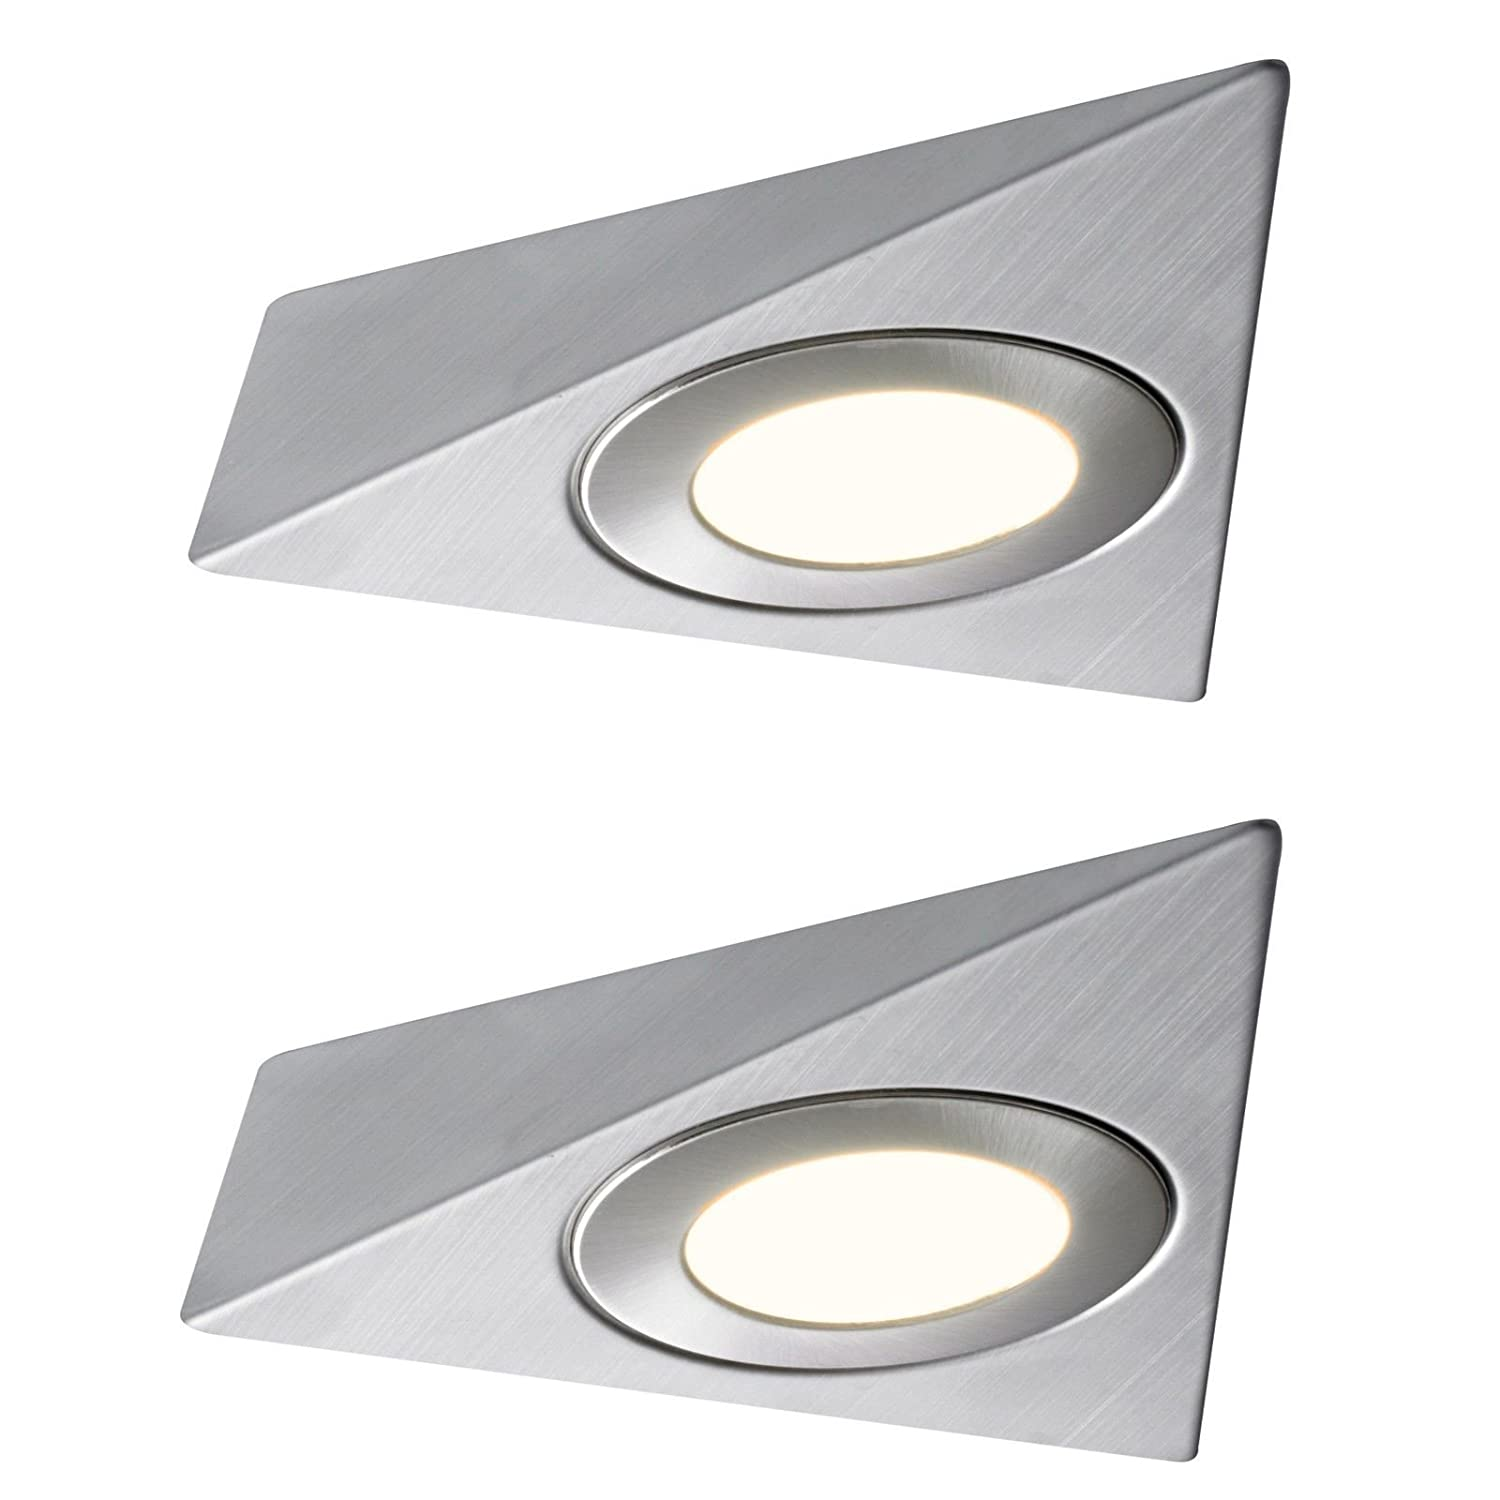 2 X LED TRIANGLE LIGHT MAINS KITCHEN UNDER UNIT CABINET CUPBOARD WARM WHITE Lighting Innovations